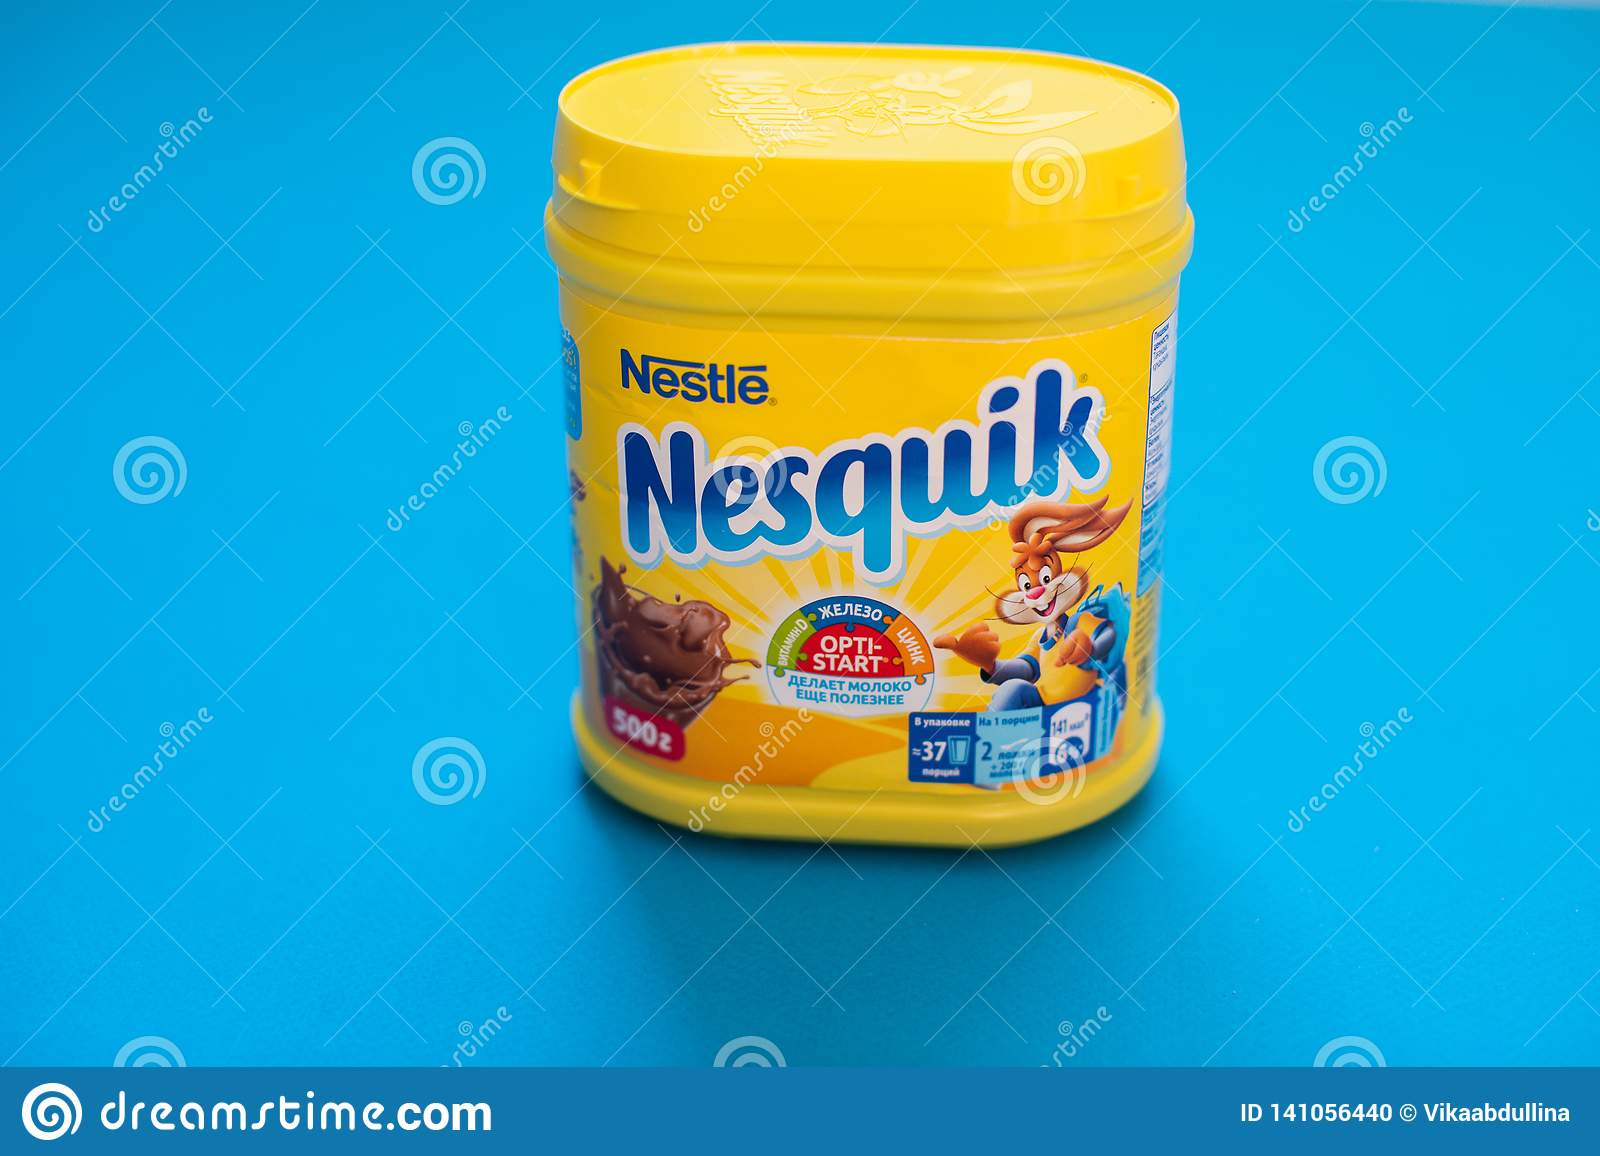 Pack of chocolate and cacao drink Nesquik by Nestle on blue background